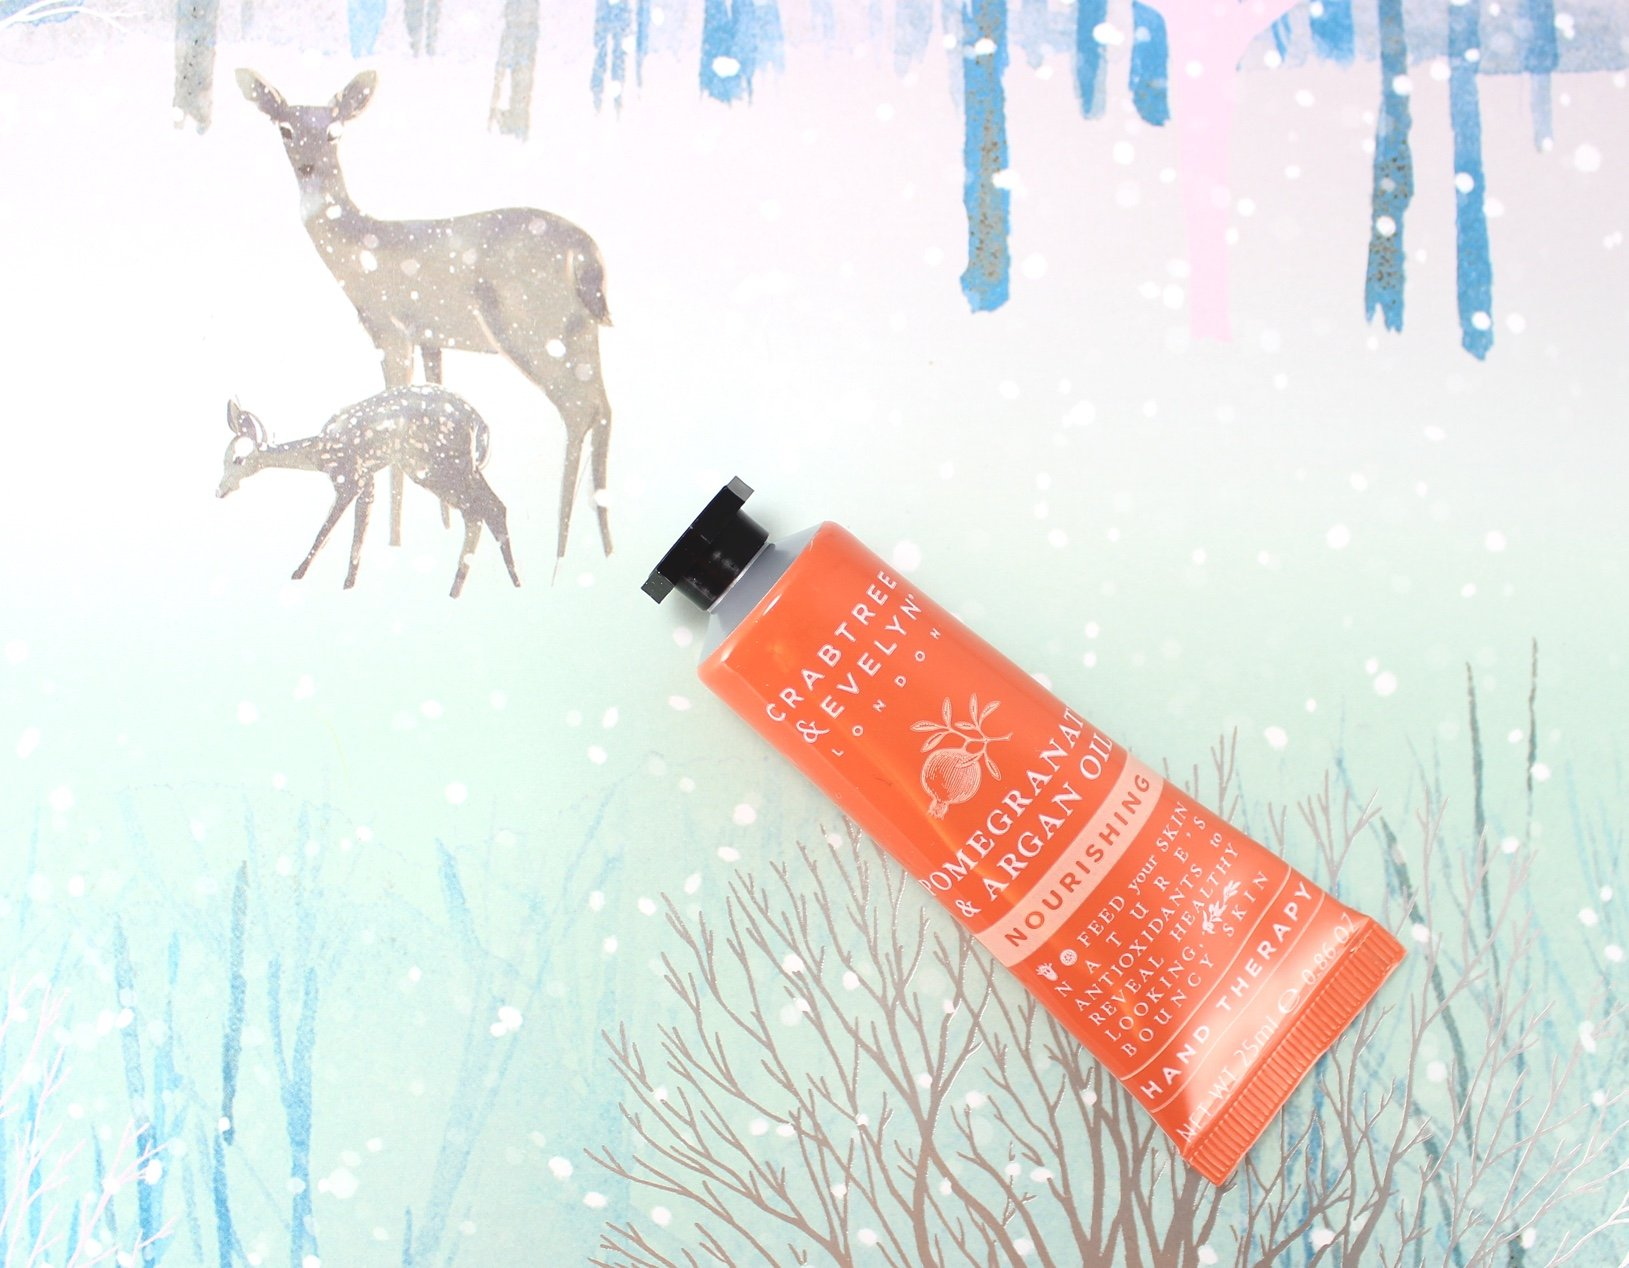 12 days of crabtree & evelyn advent calendar – day 12 swatch